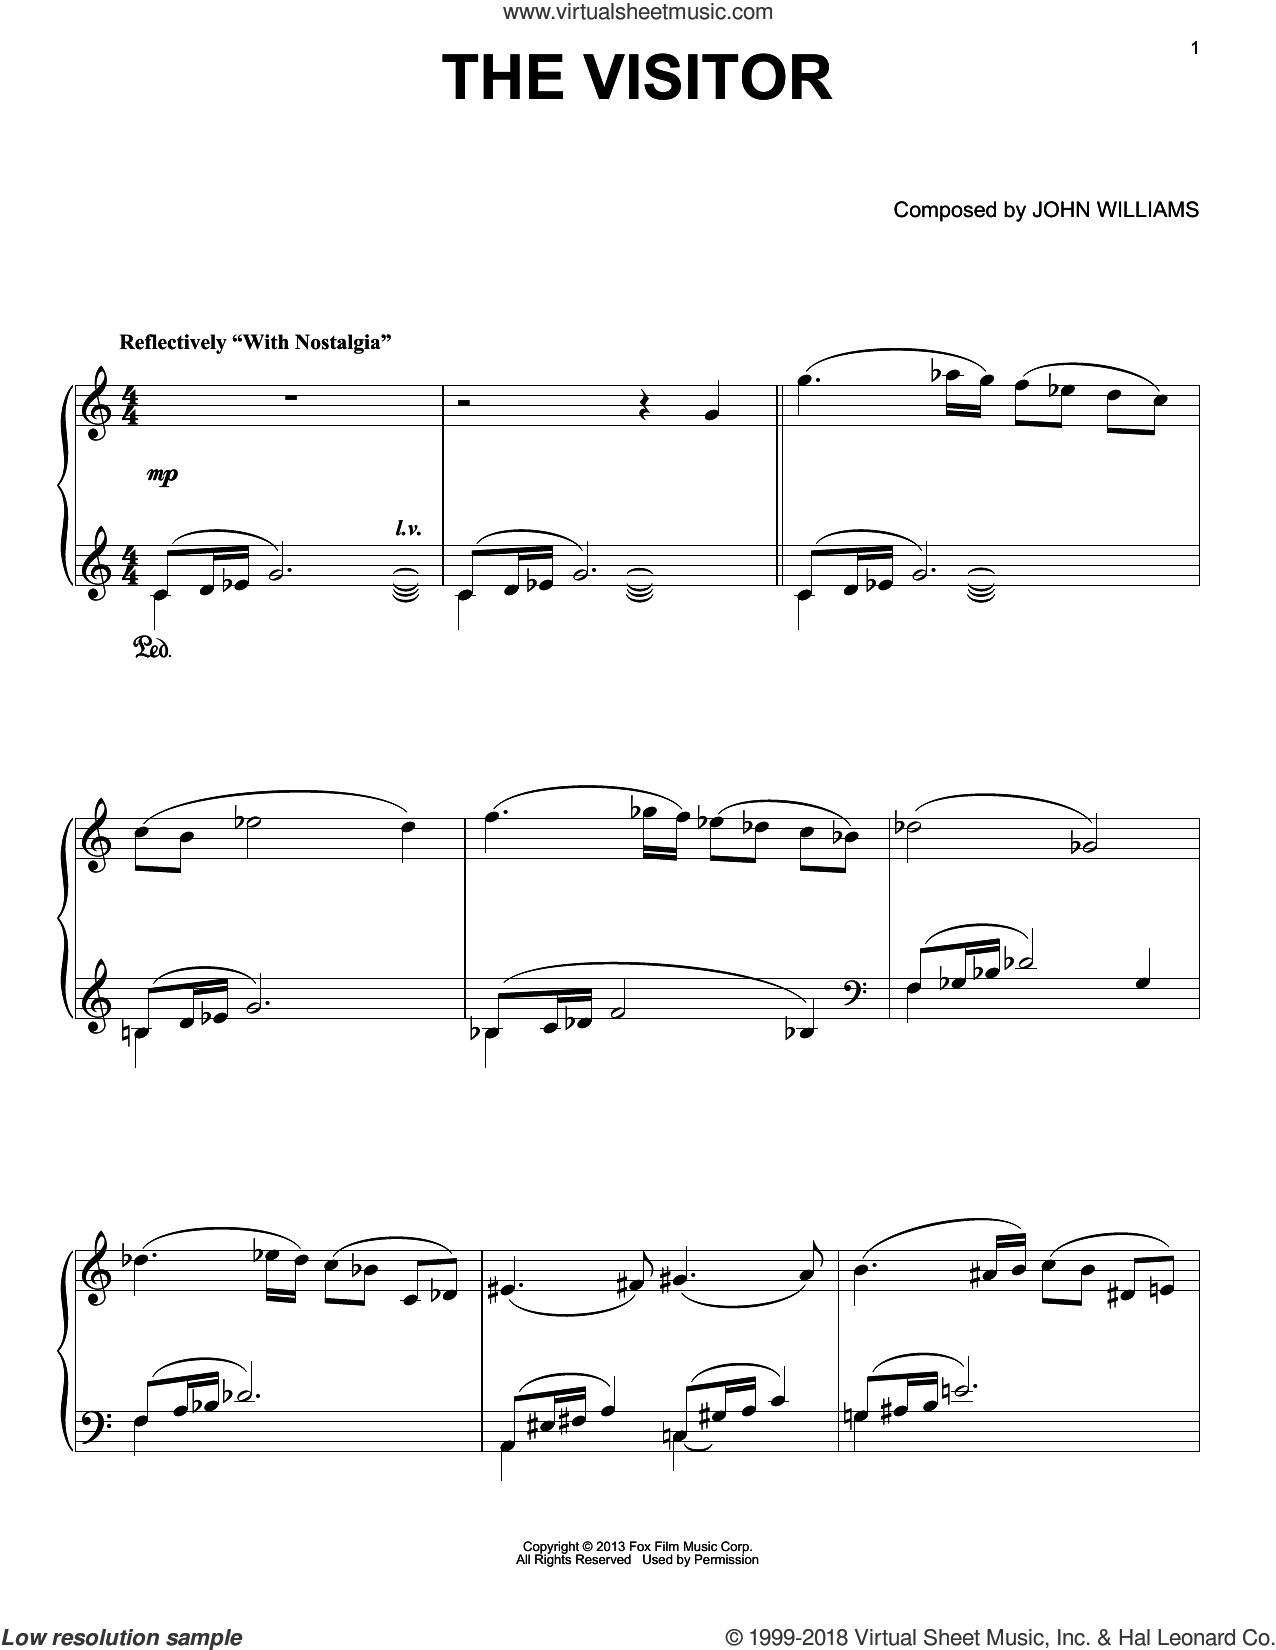 The Visitor sheet music for piano solo by John Williams